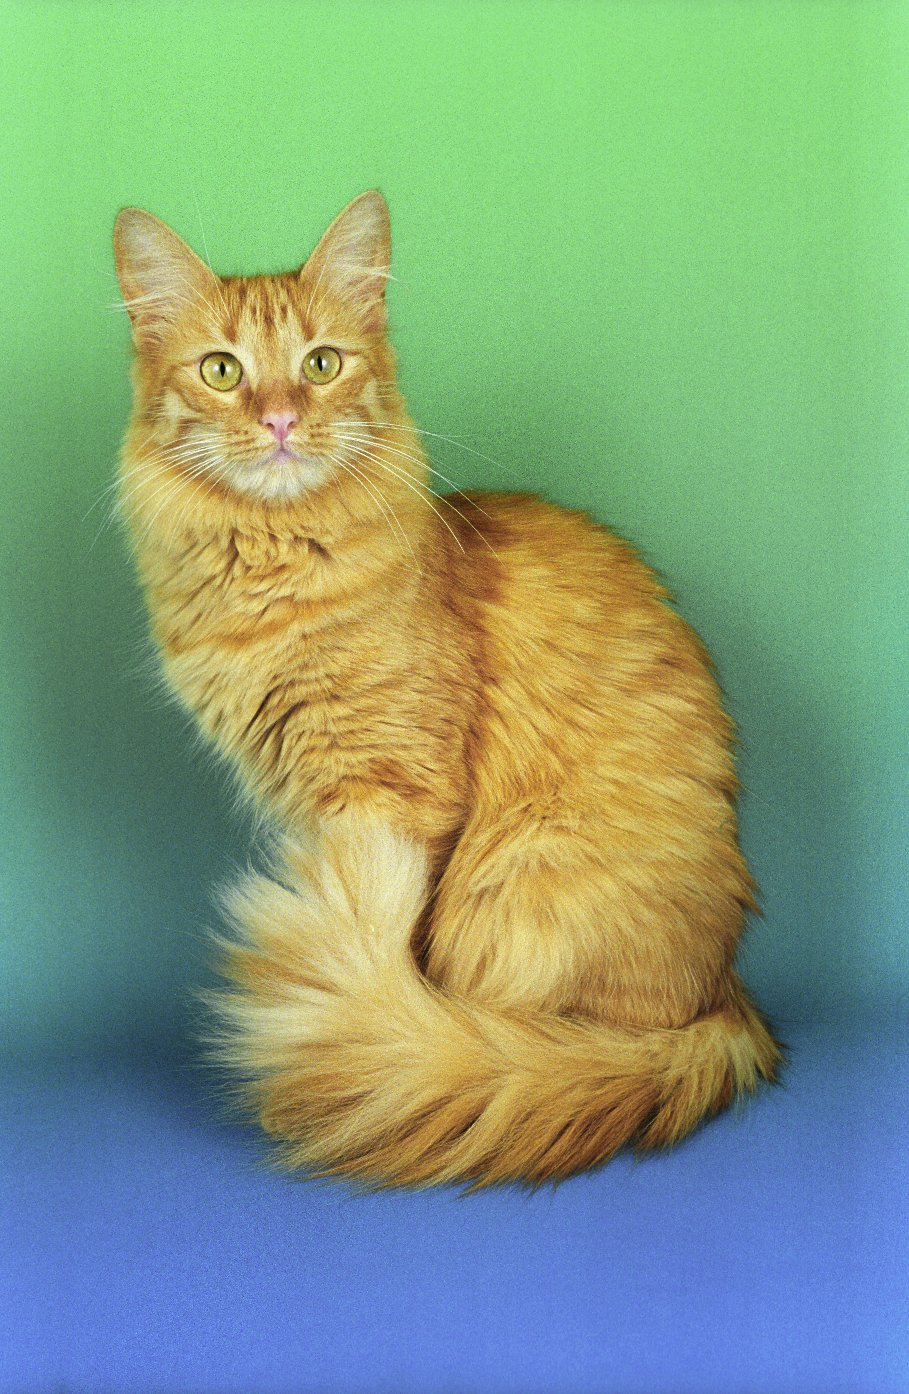 Turkish Angora Cat - Cats of the world